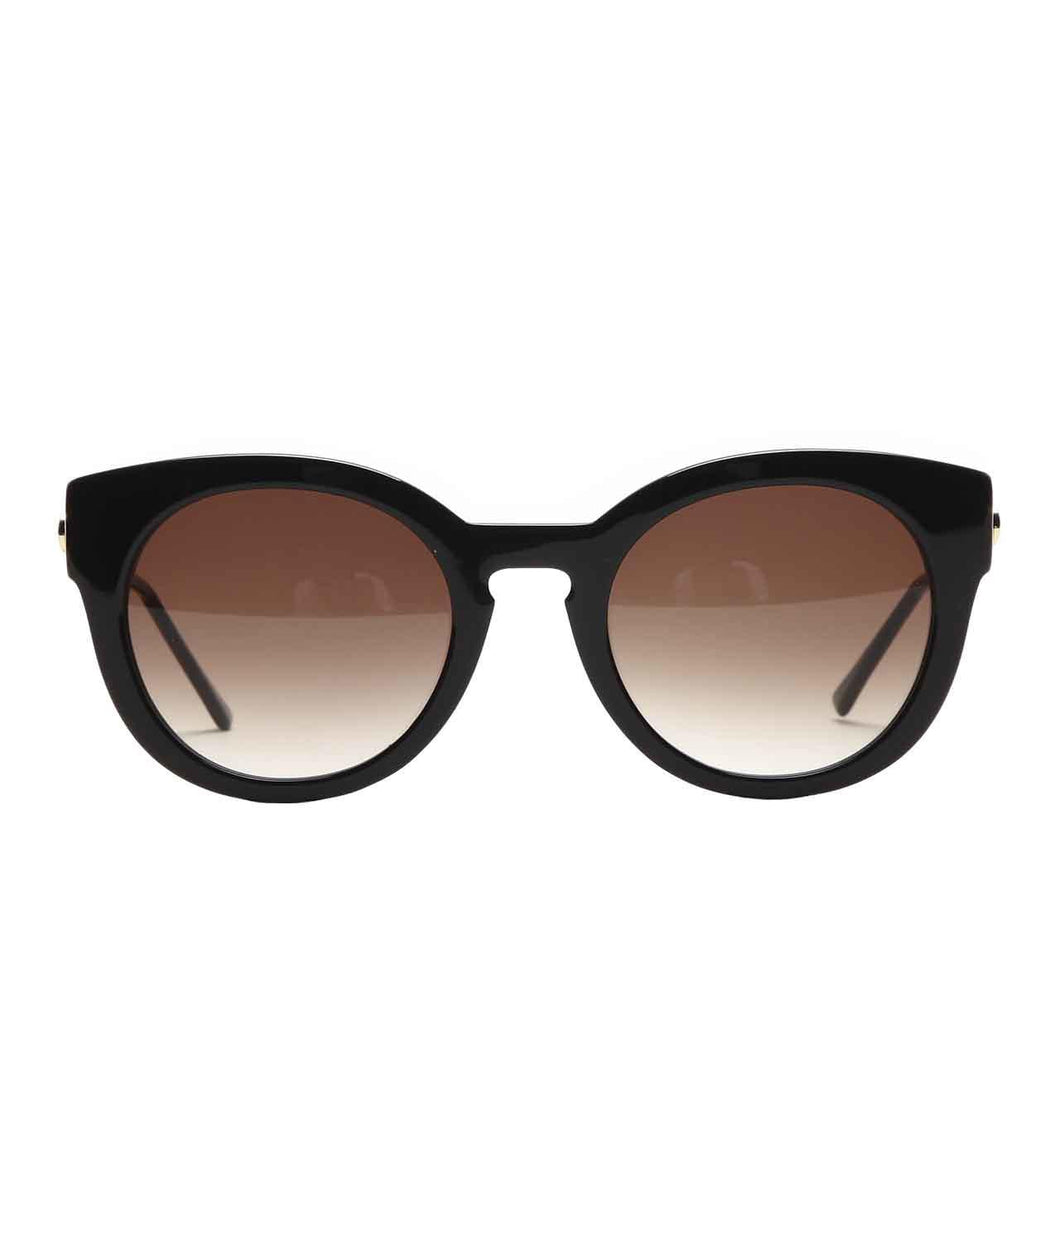 Thierry Lasry - MAGNETY 101